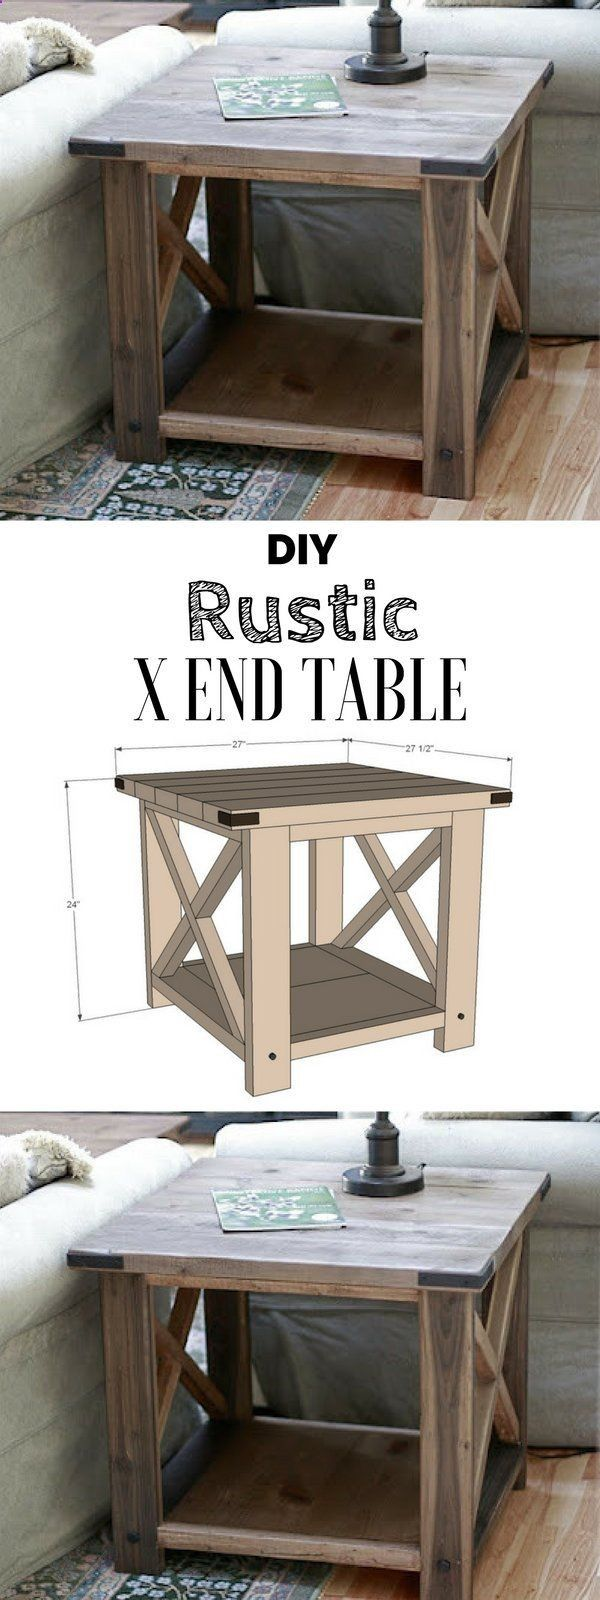 check out the tutorial for an easy rustic diy end table diy home rh pinterest co kr